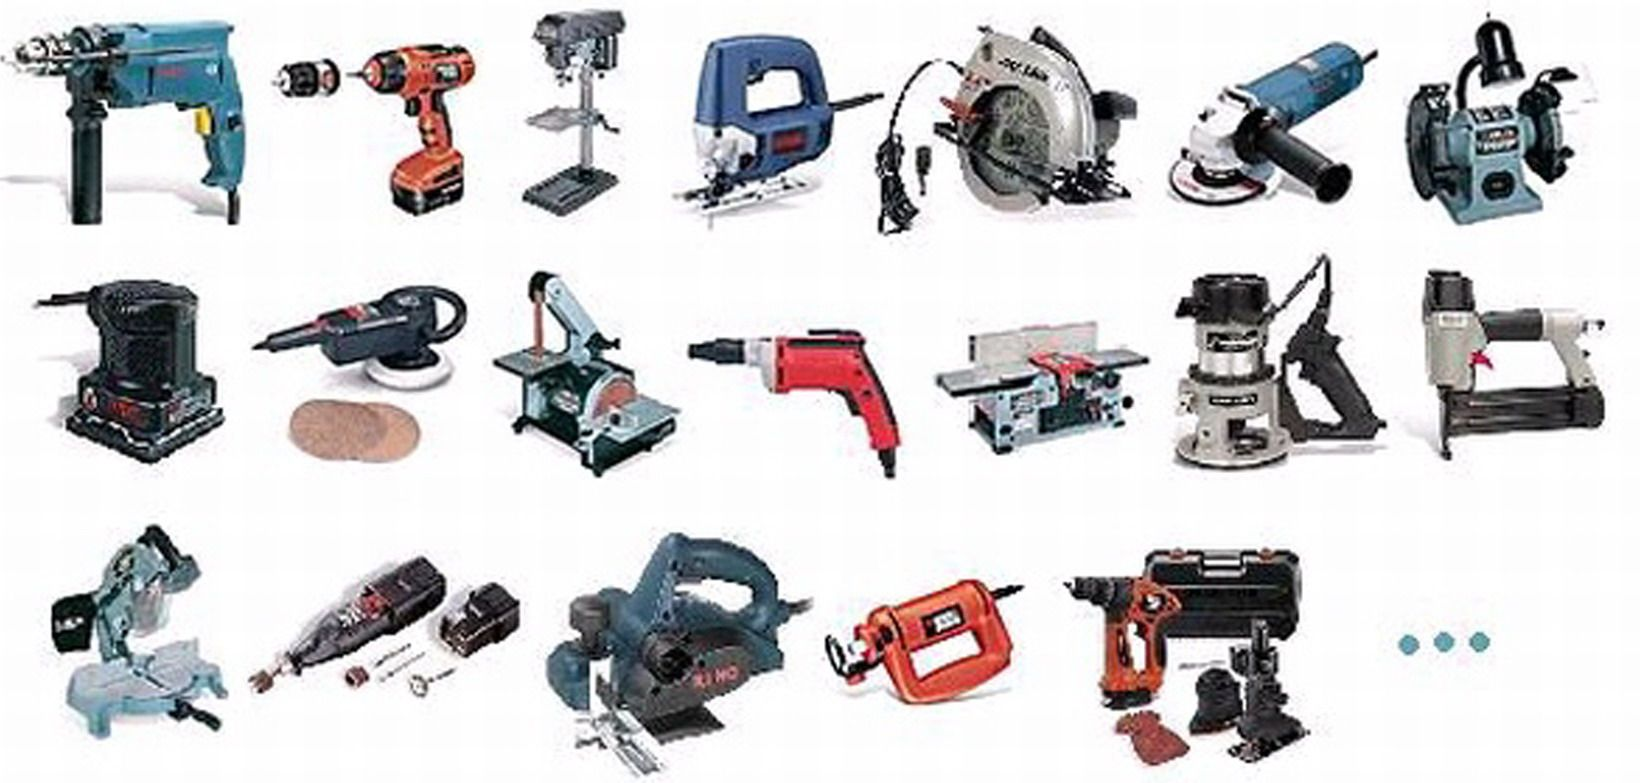 Pin By Jk H On 7 Power Tools Electric Tools Fun To Be One